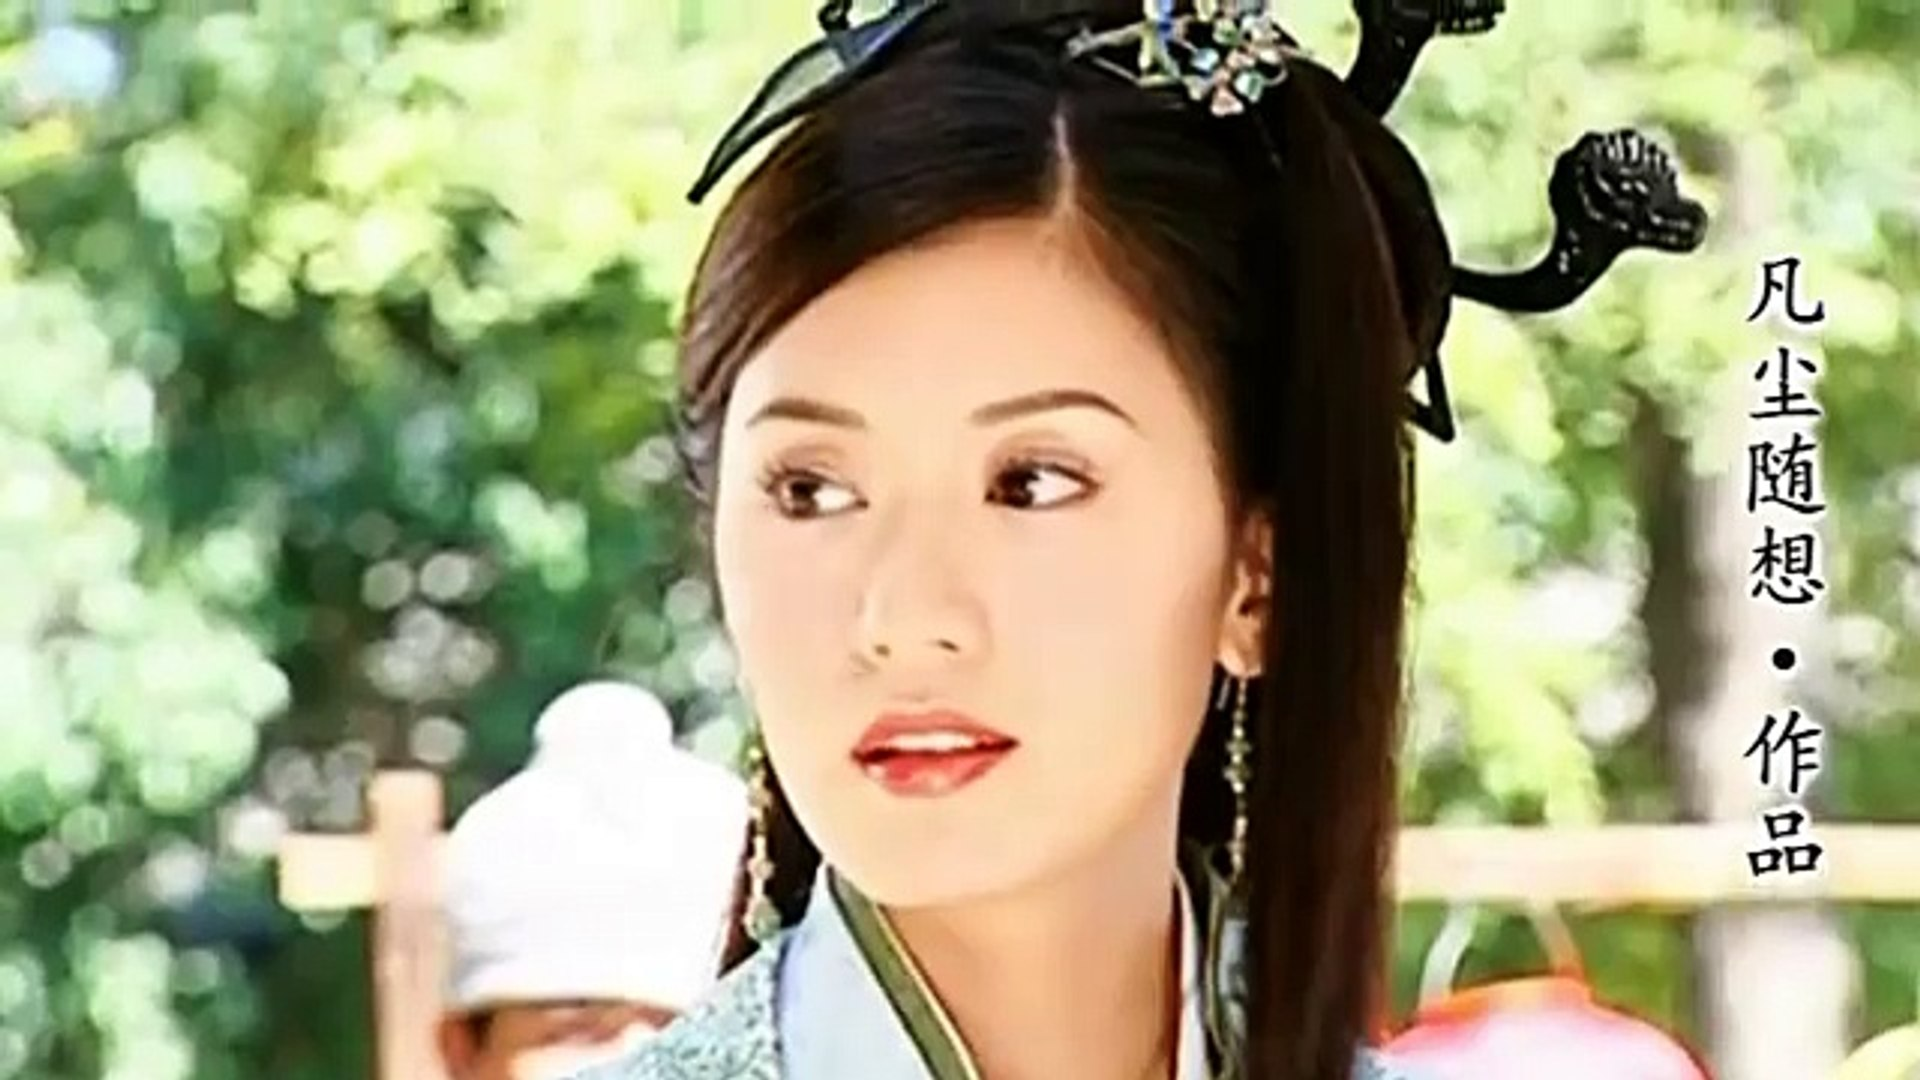 Pretty Beautiful Chinese Girl Compilation 2015 #1 | Beautiful Chinese Actresses in Ancient Costume